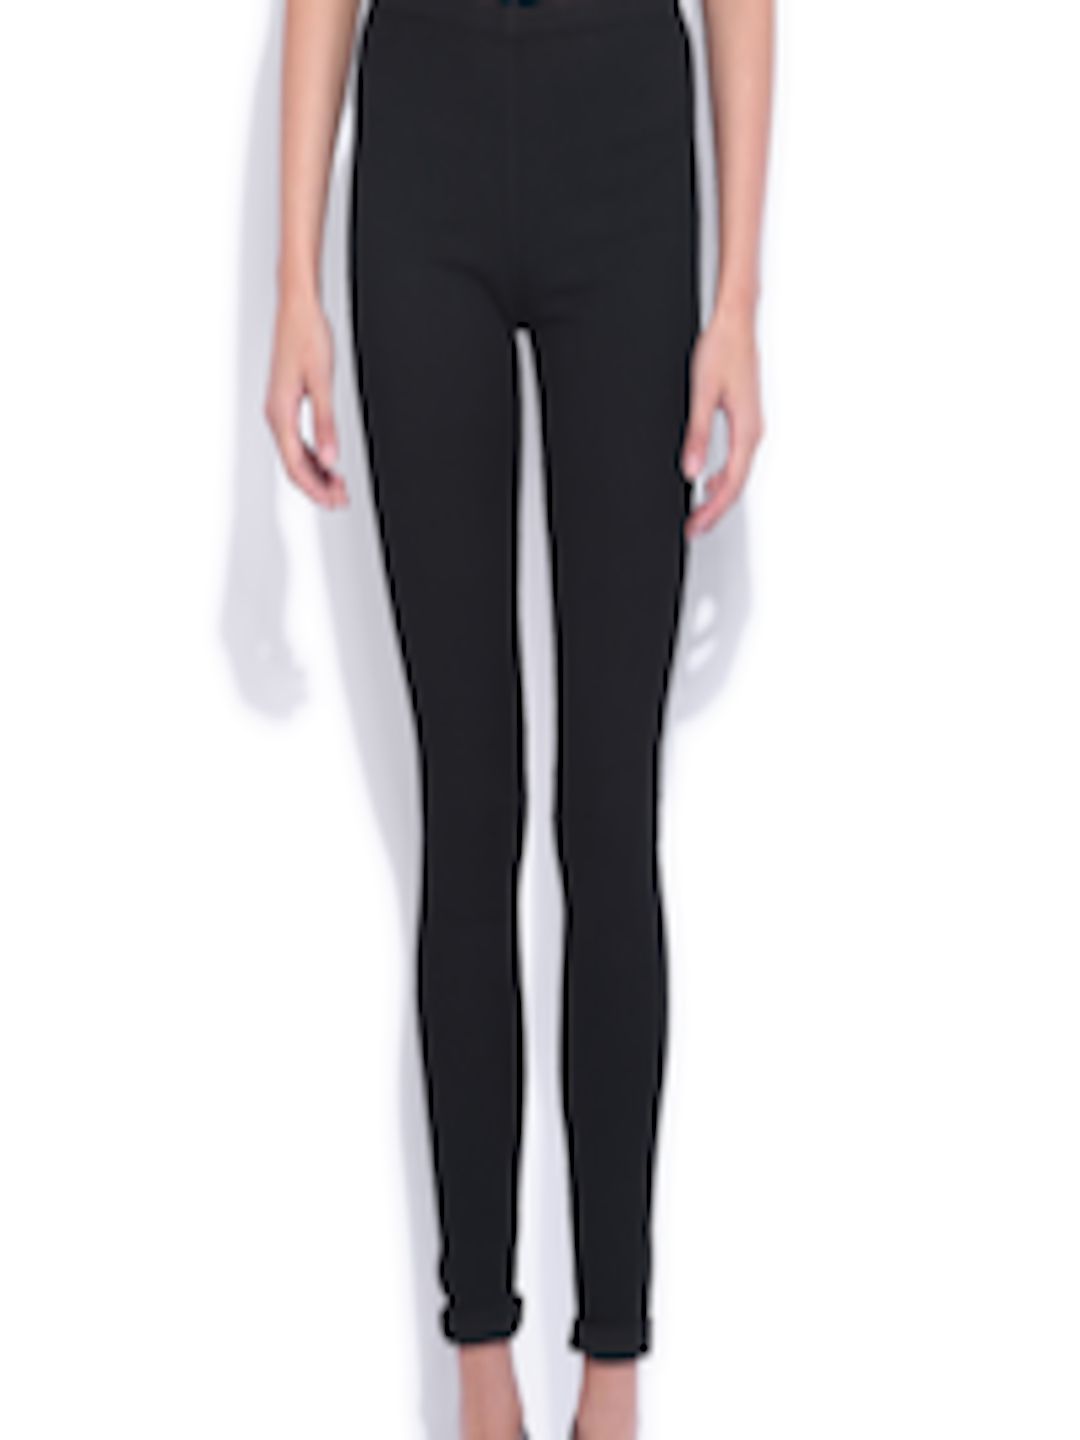 94cdc10810f48a Buy Kraus Jeans Black Jeggings - Jeggings for Women 1062704 | Myntra